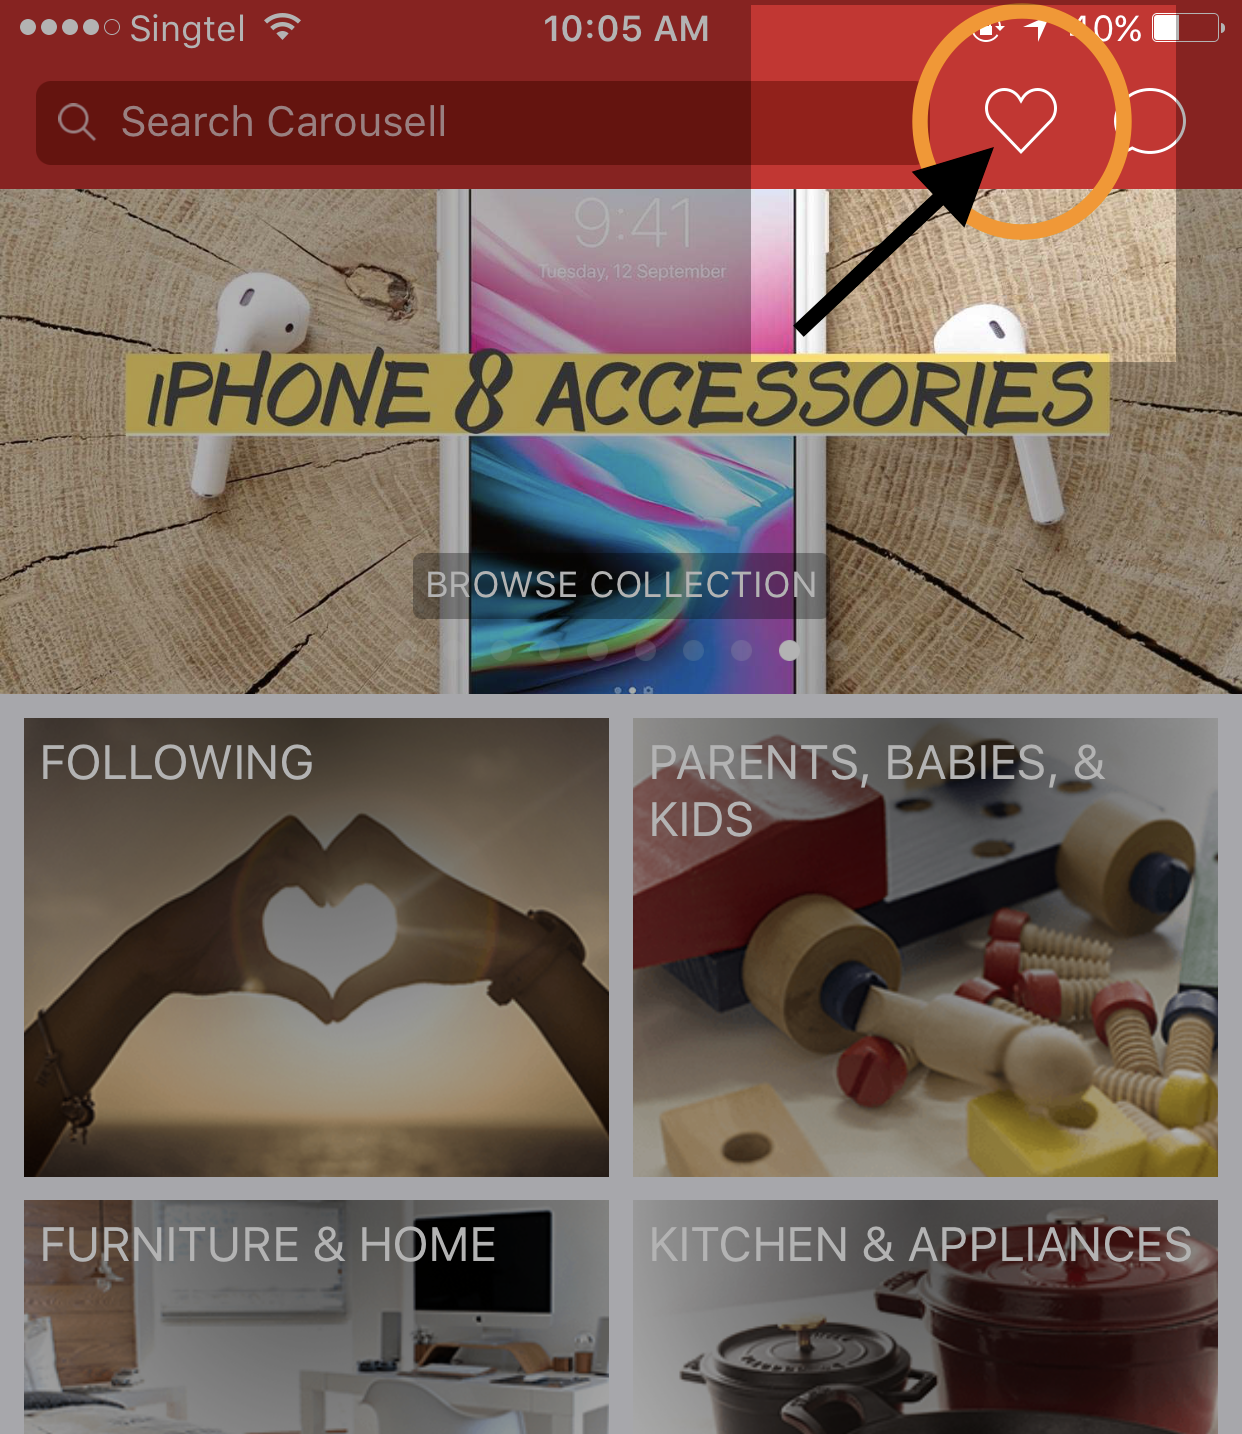 Where to find bookmarked items on Carousell